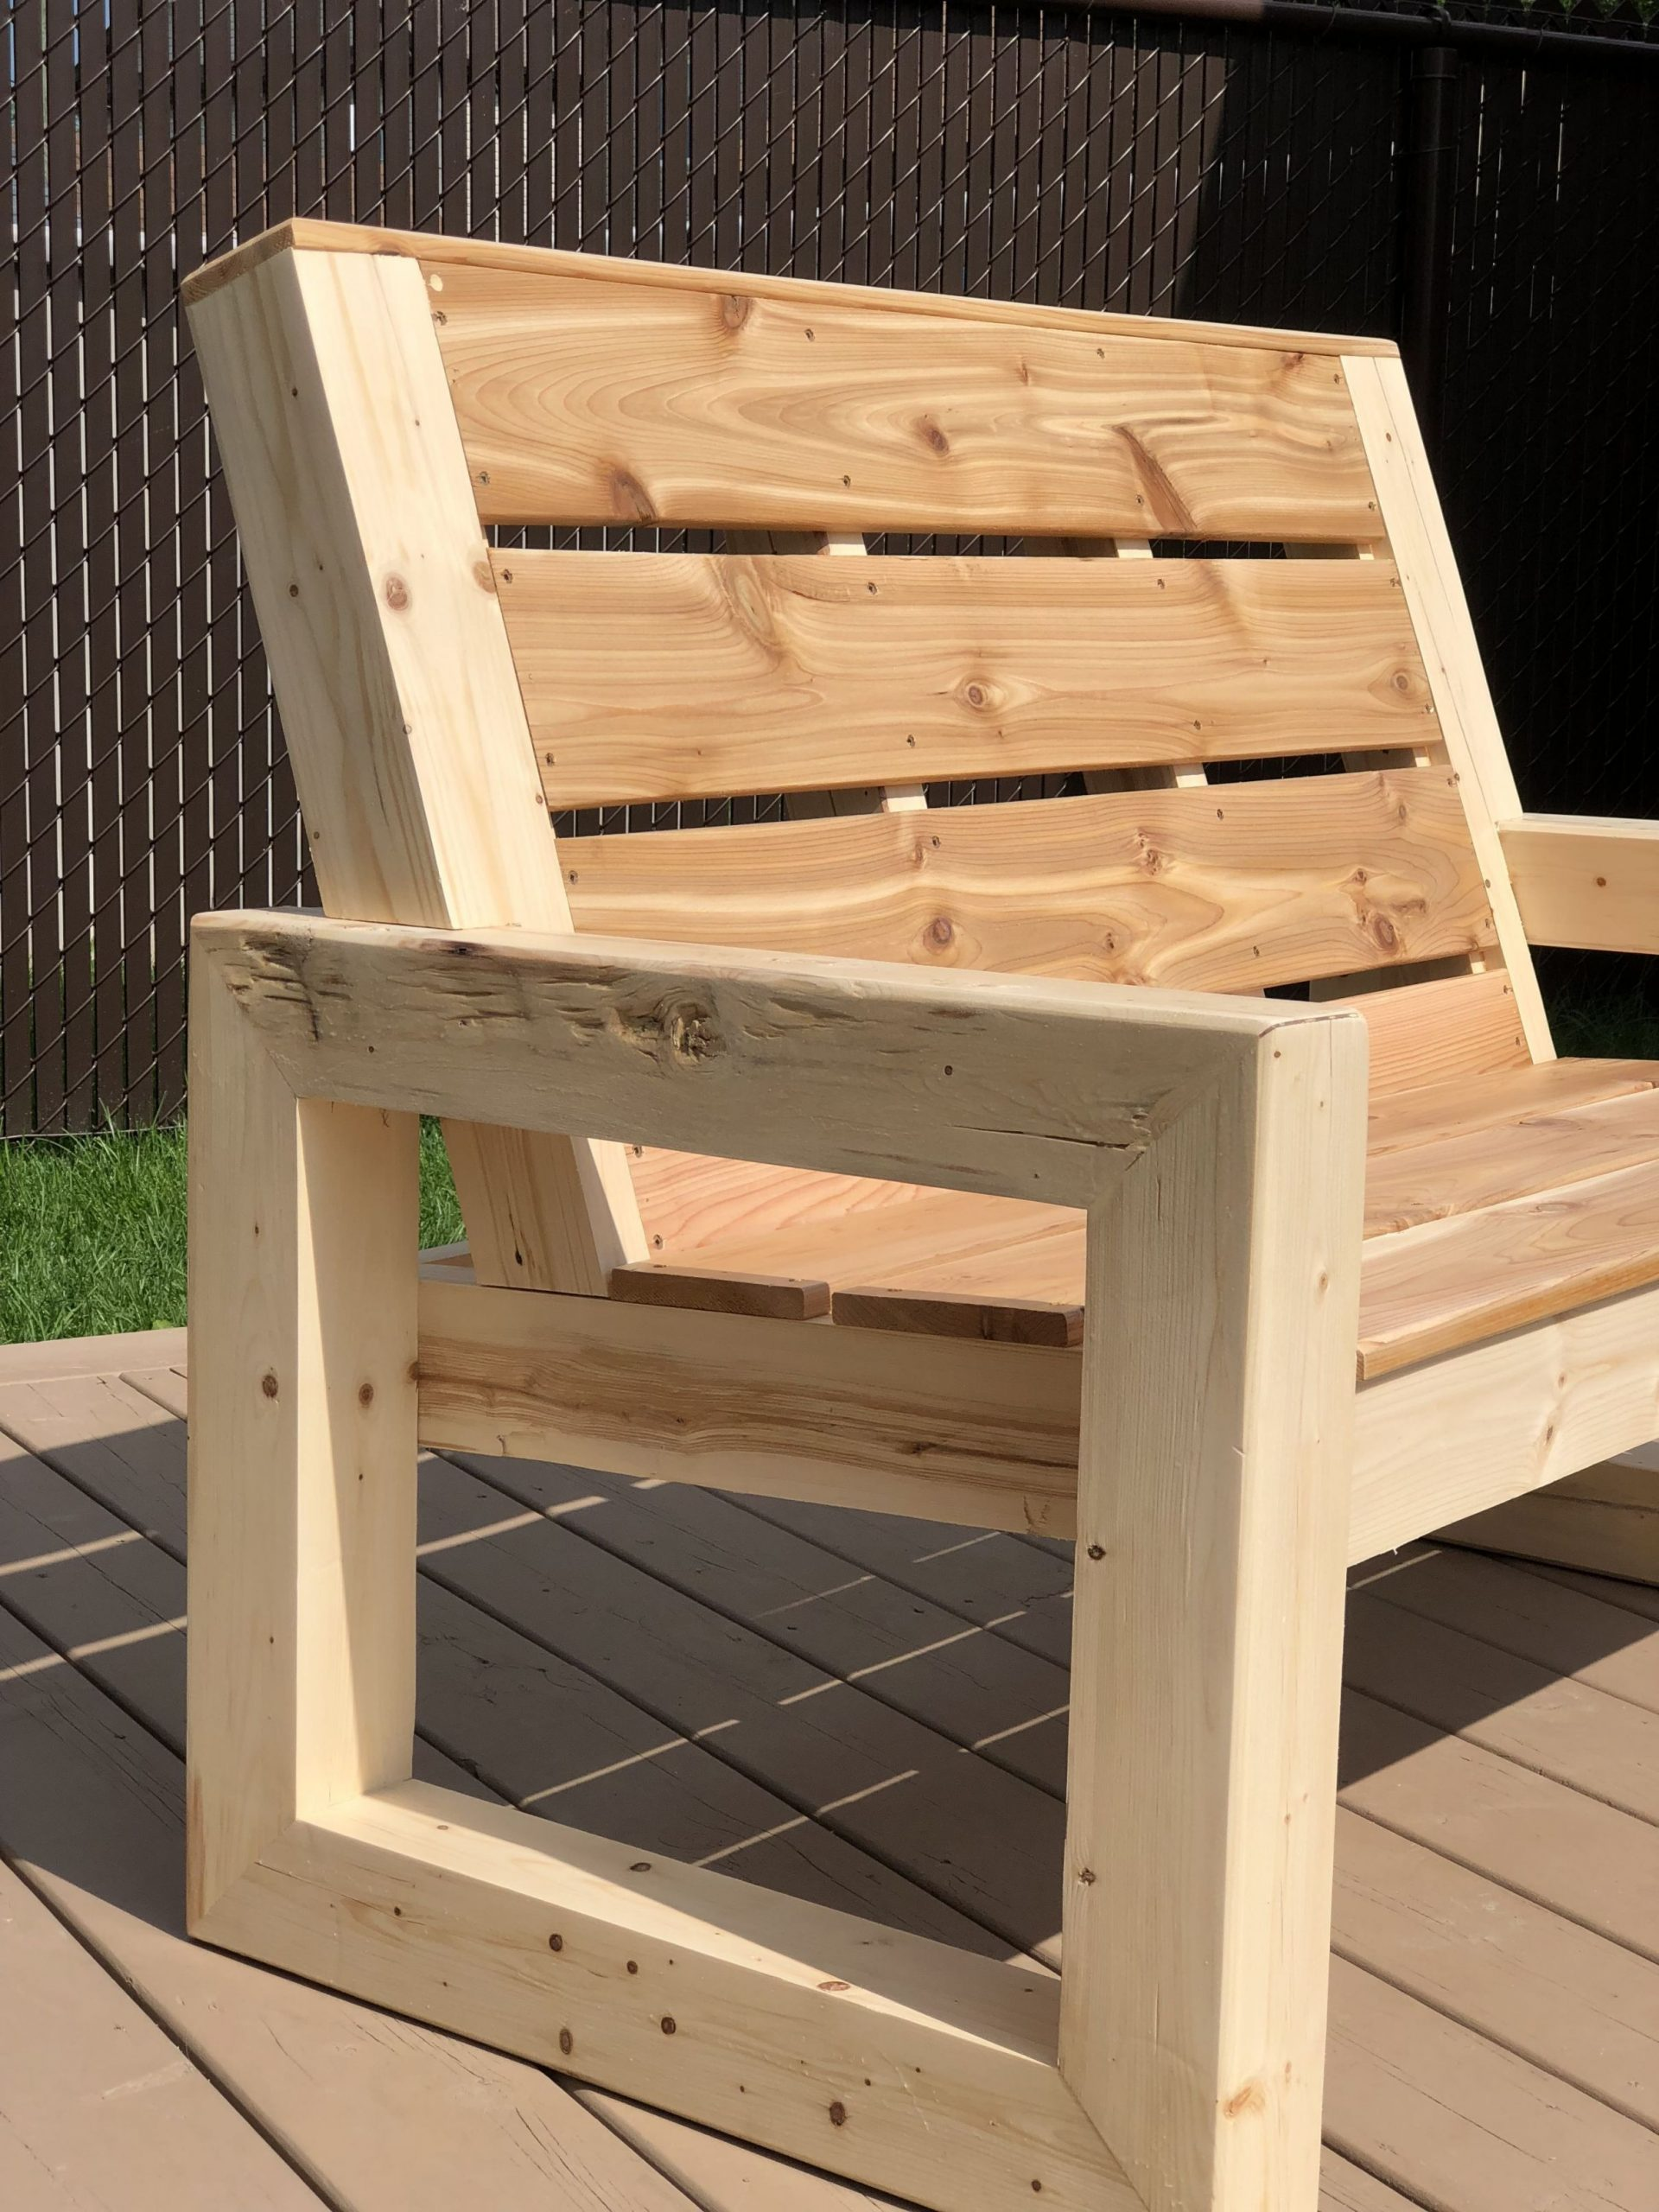 Adorable diy wood furniture projects